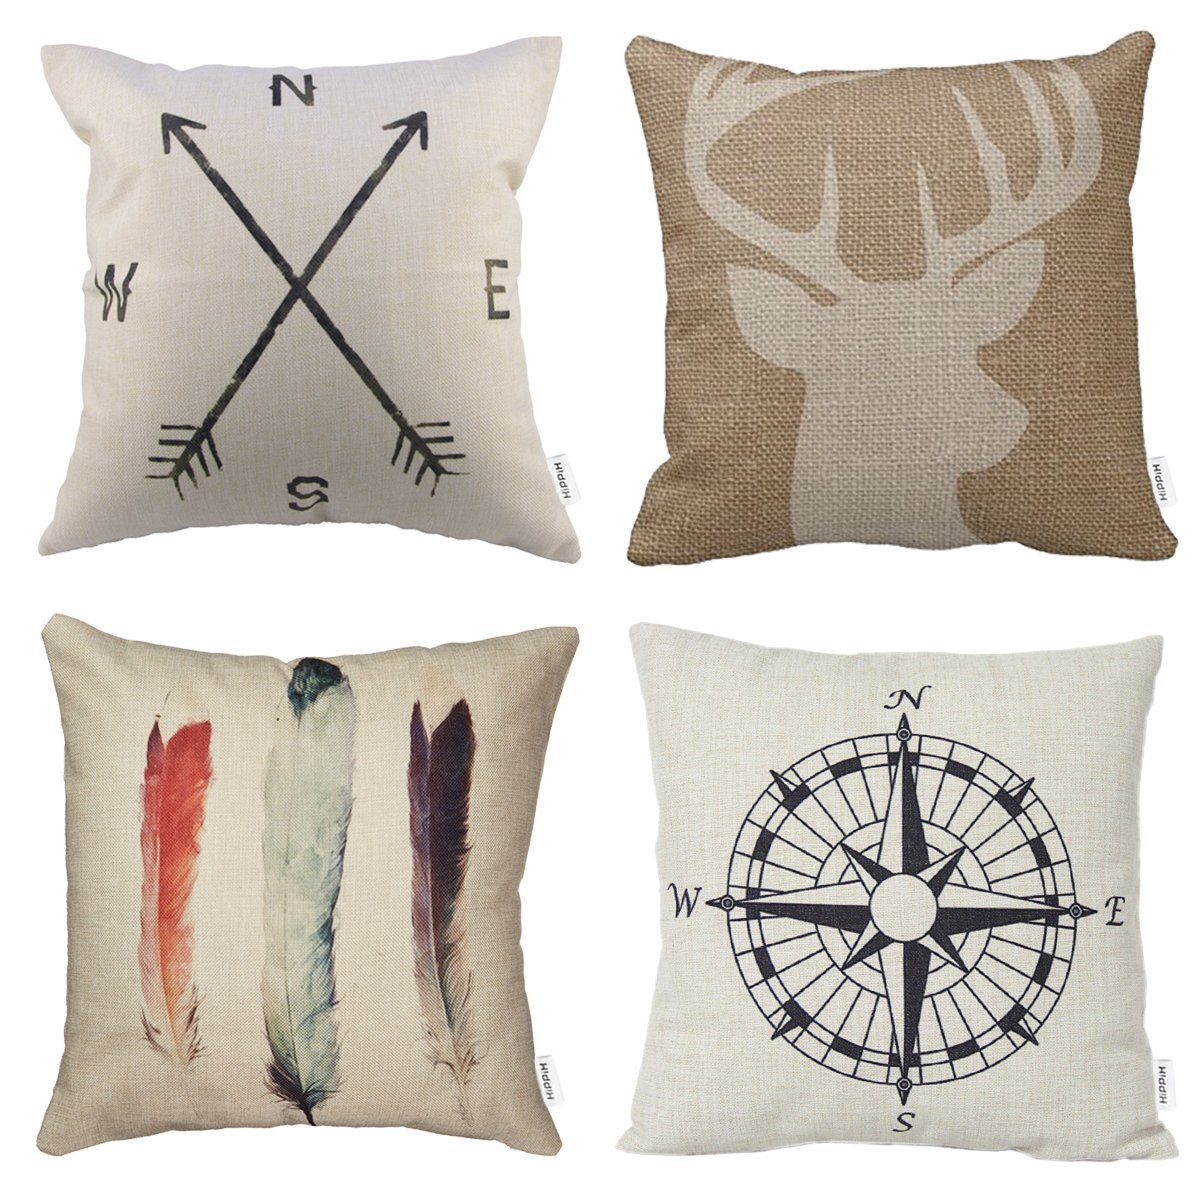 Unique Pillows gifts for girlfriend on her birthday